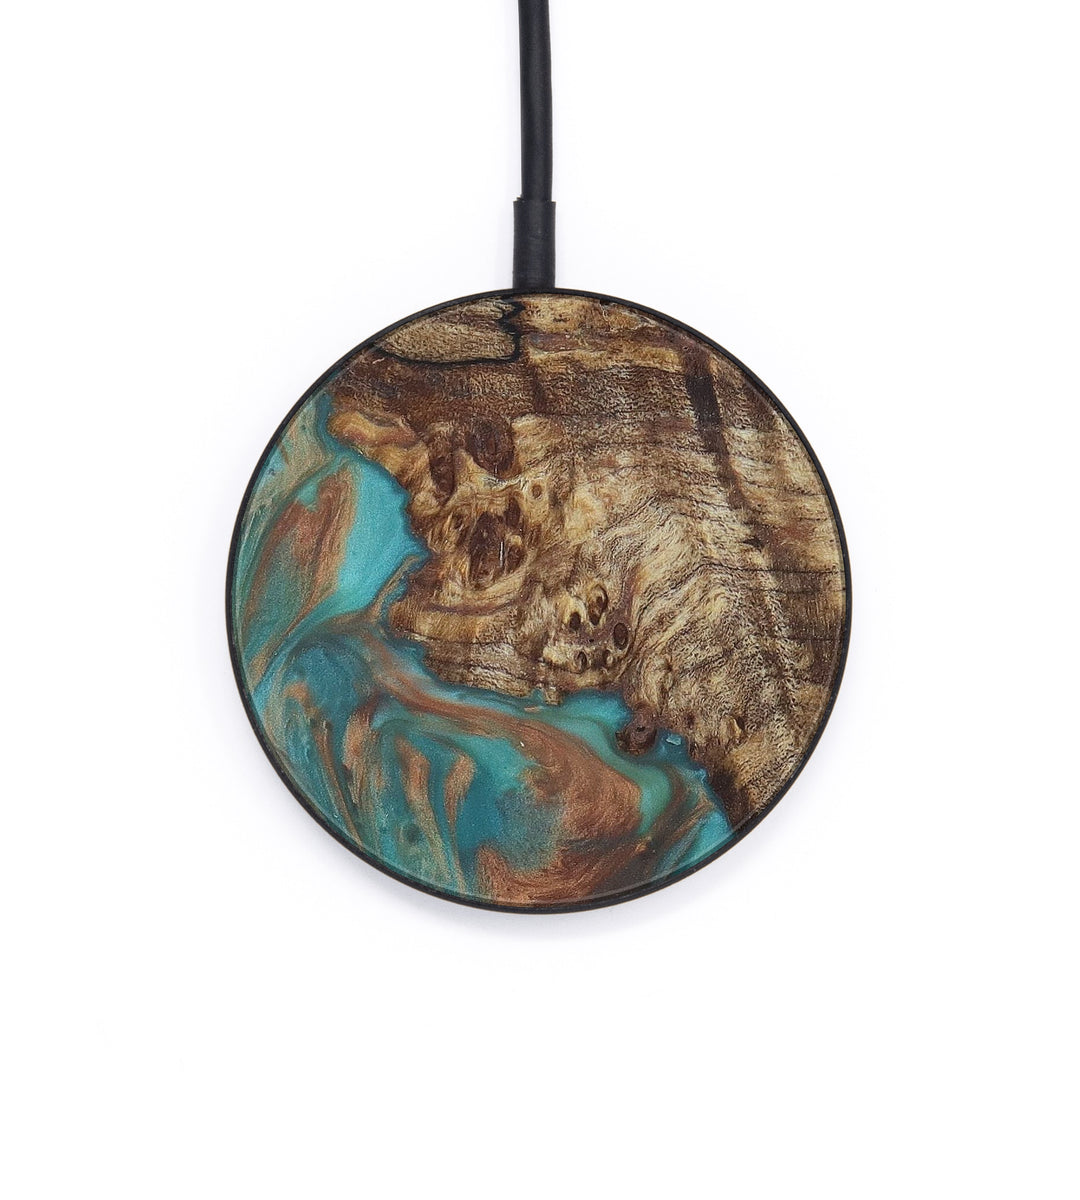 Circle Wood+Resin Wireless Charger - Mia (Teal & Gold, 408830)